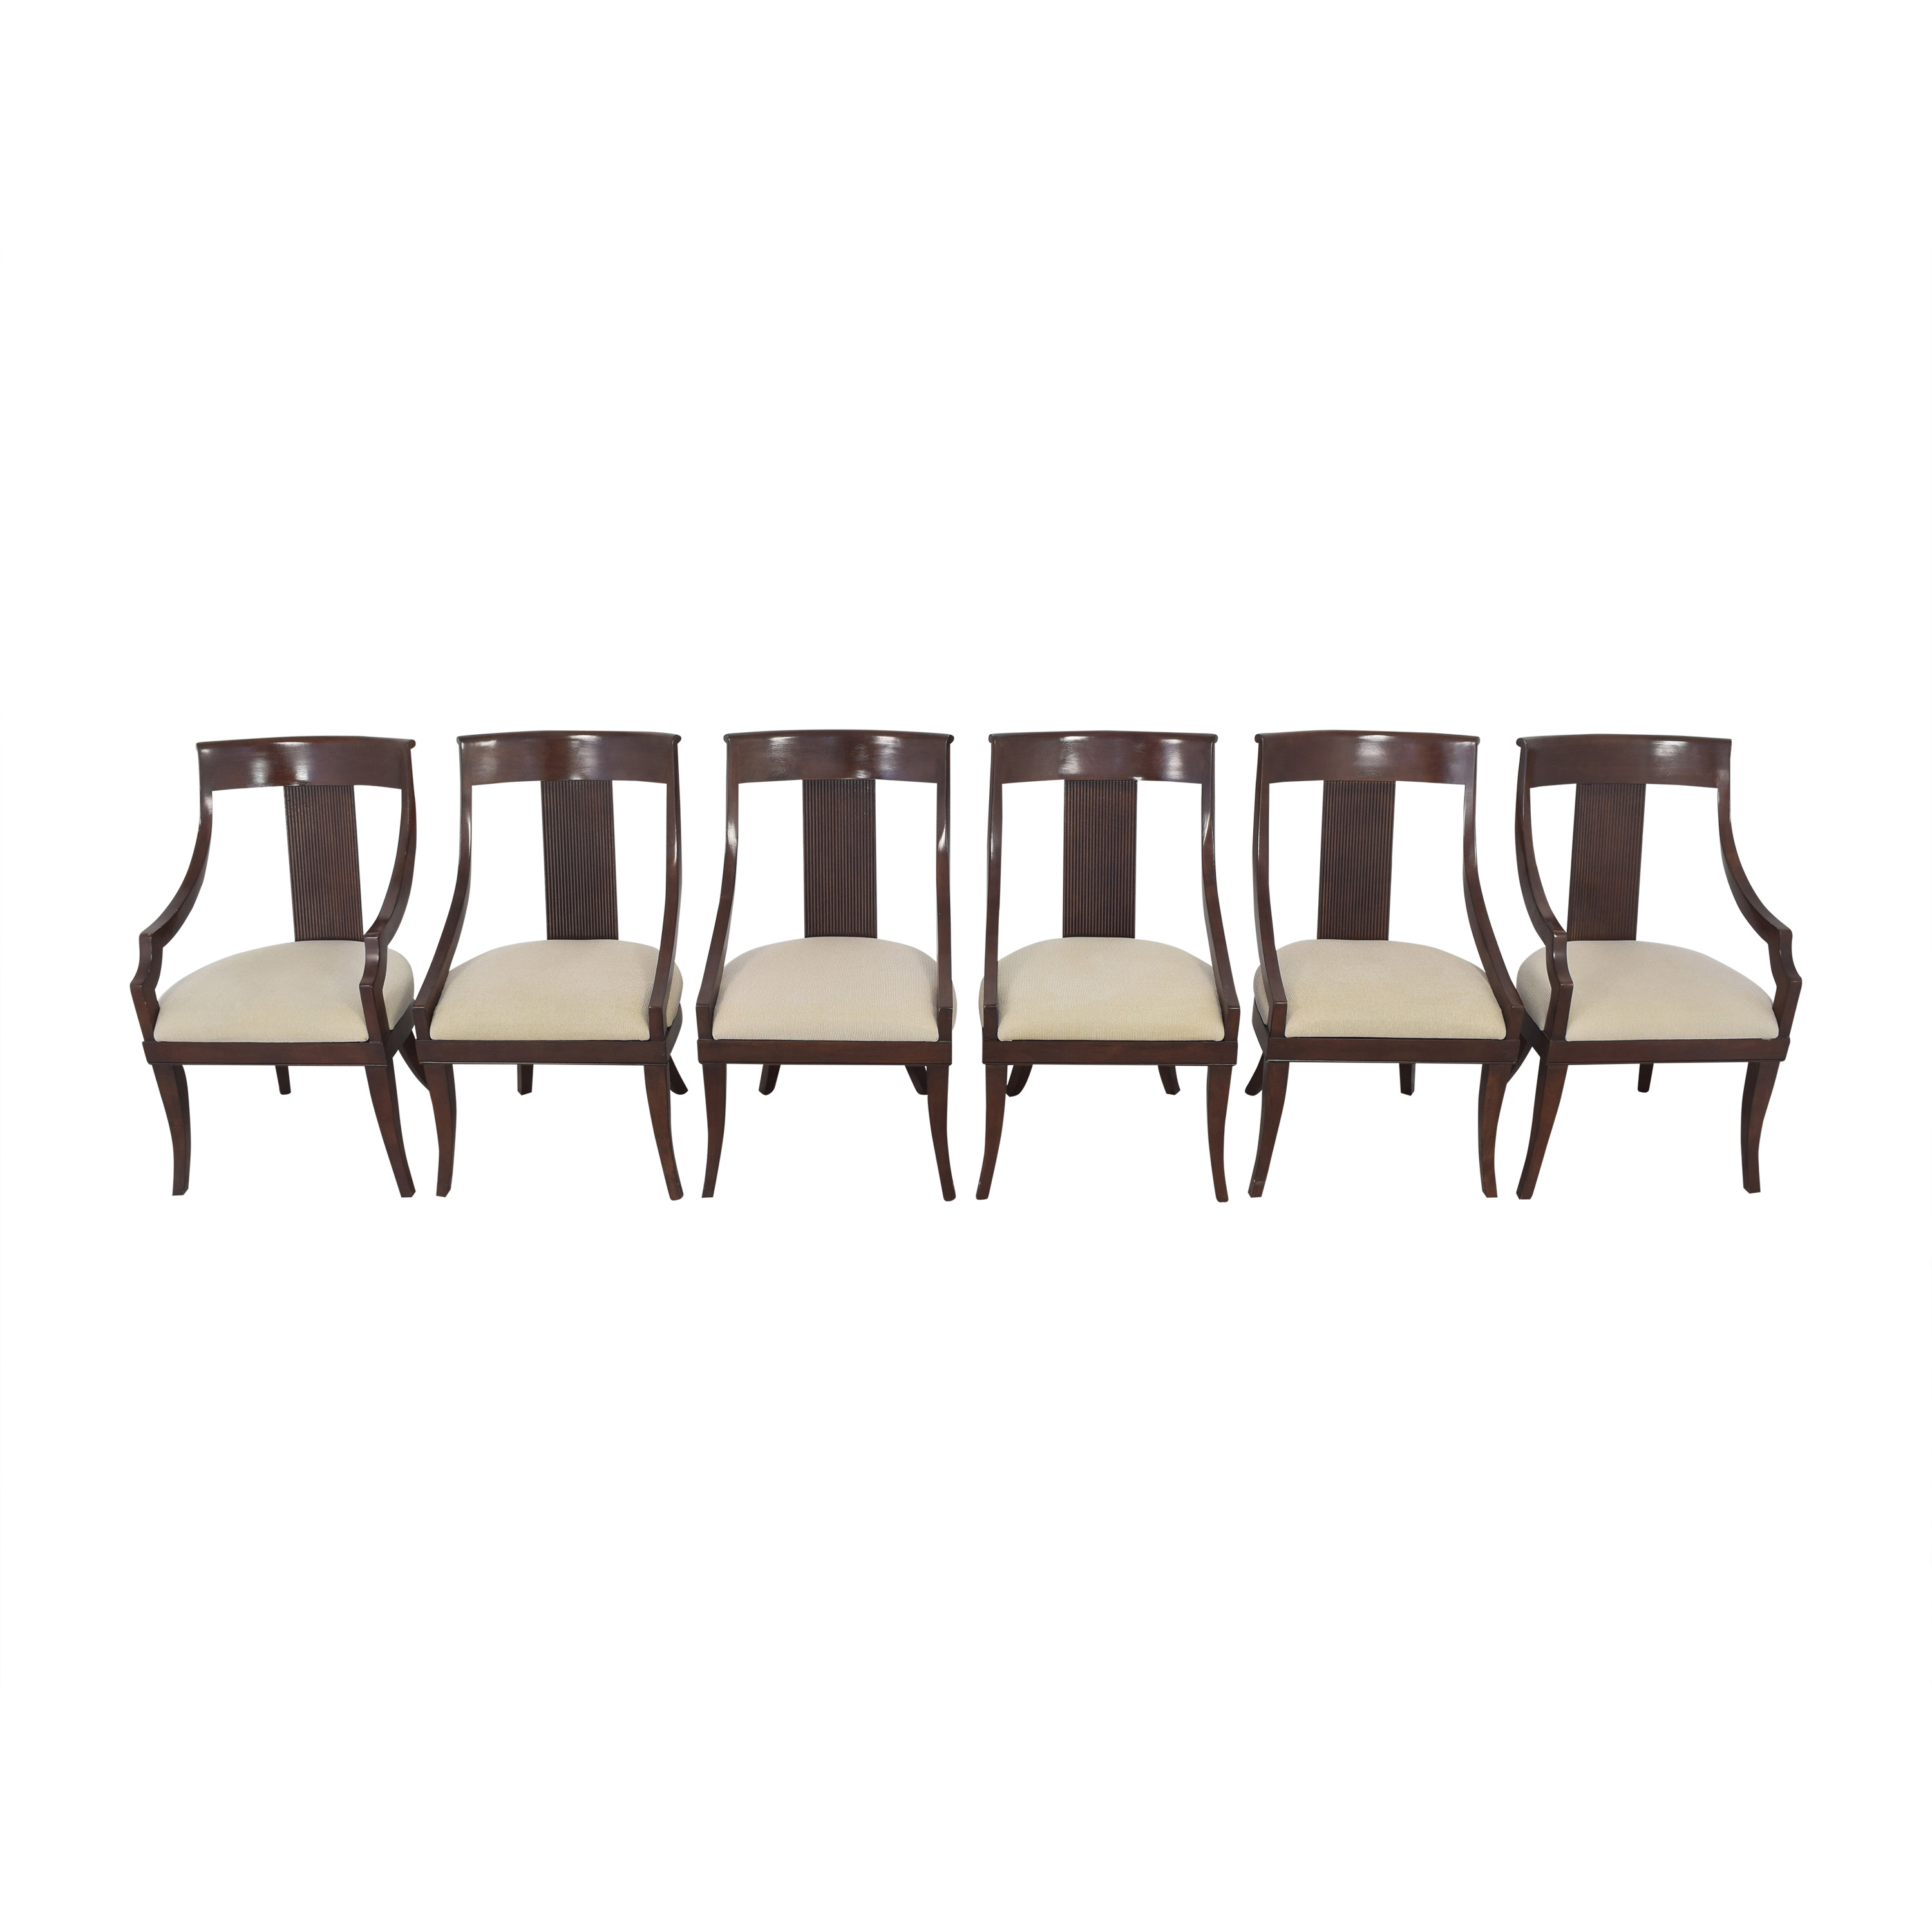 shop Macy's Upholstered Dining Chairs Macy's Dining Chairs